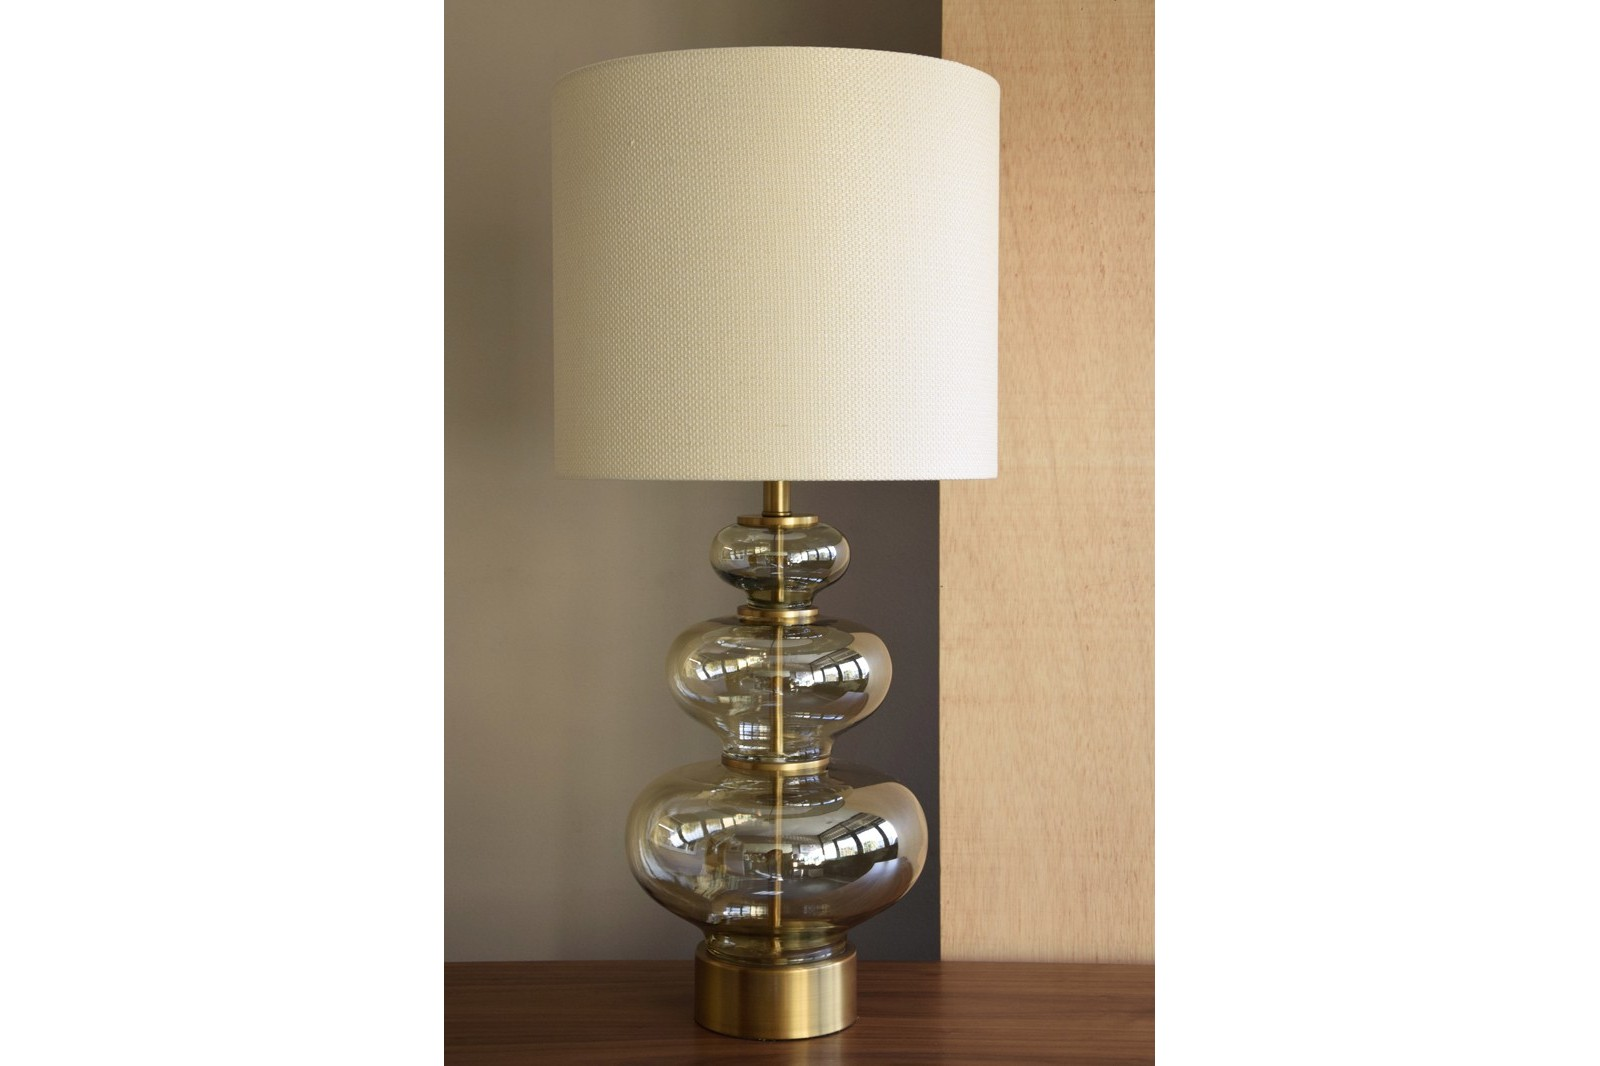 AMBER GLASS TABLE LAMP PAMPKIN WITH SHADE